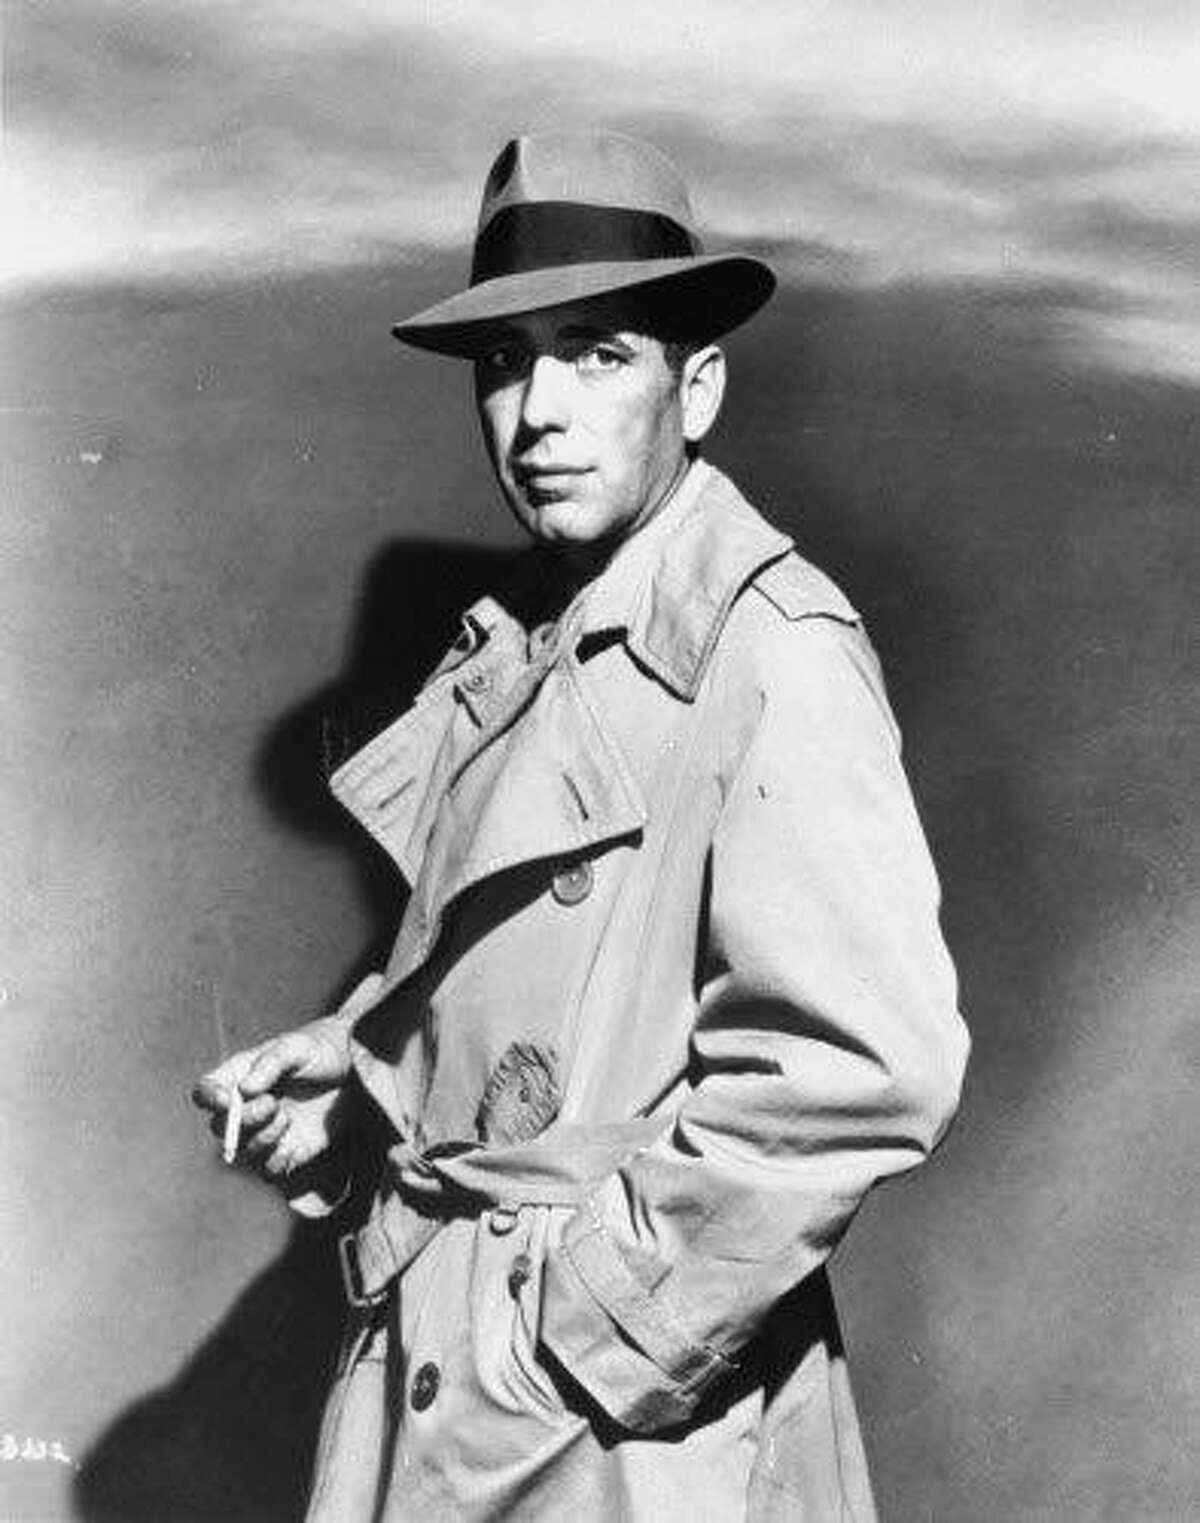 """FILE - In this 1941 film image originally released by Warner Bros., actor Humphrey Bogart is shown in a scene from """"Casablanca."""" The film academy is opening an outdoor theater in Hollywood and inviting tourists and locals to enjoy movies there this summer. Academy president Tom Sherak unveiled the screening space Monday and announced the """"Oscars Outdoors"""" film series to begin June 15 with """"Casablanca."""" Films will screen every Friday and Saturday night through Aug. 18. (AP Photo/Warner Brothers)"""